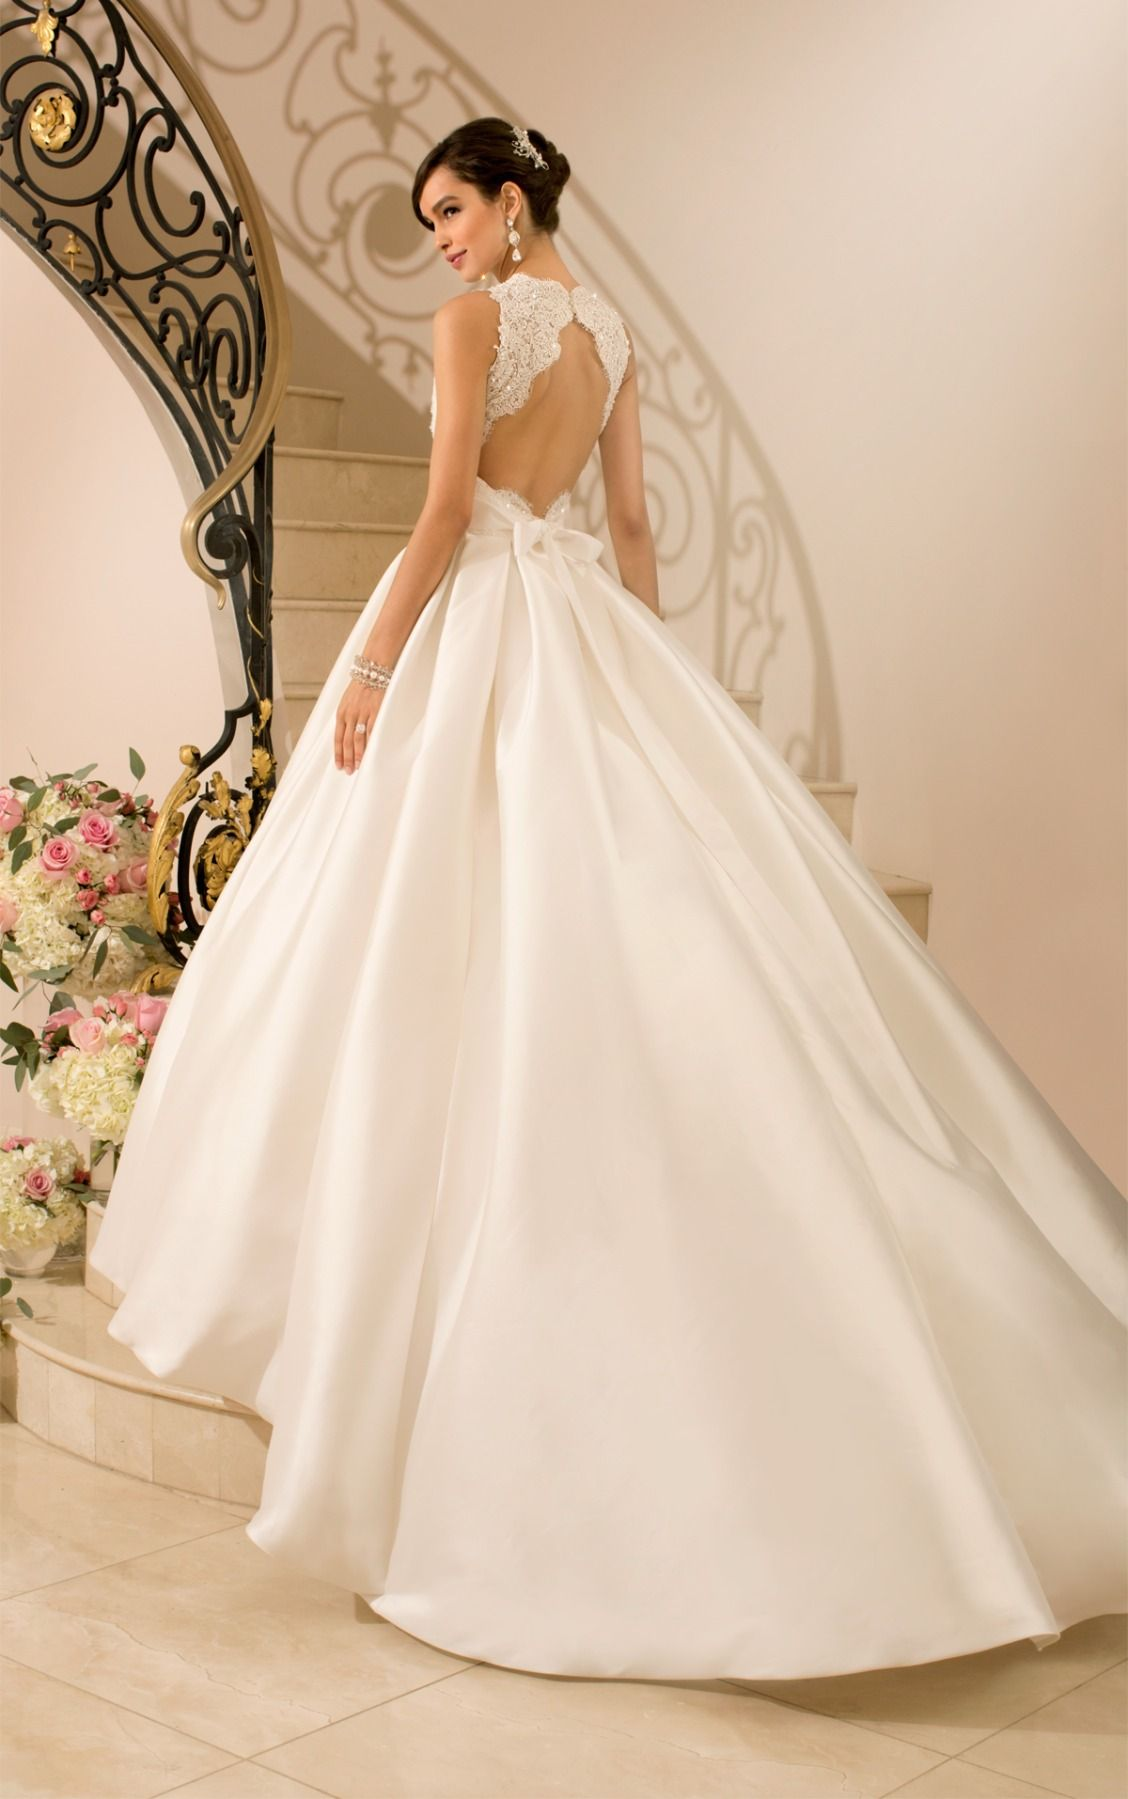 Truly unique wedding gown by stella york unique wedding gowns